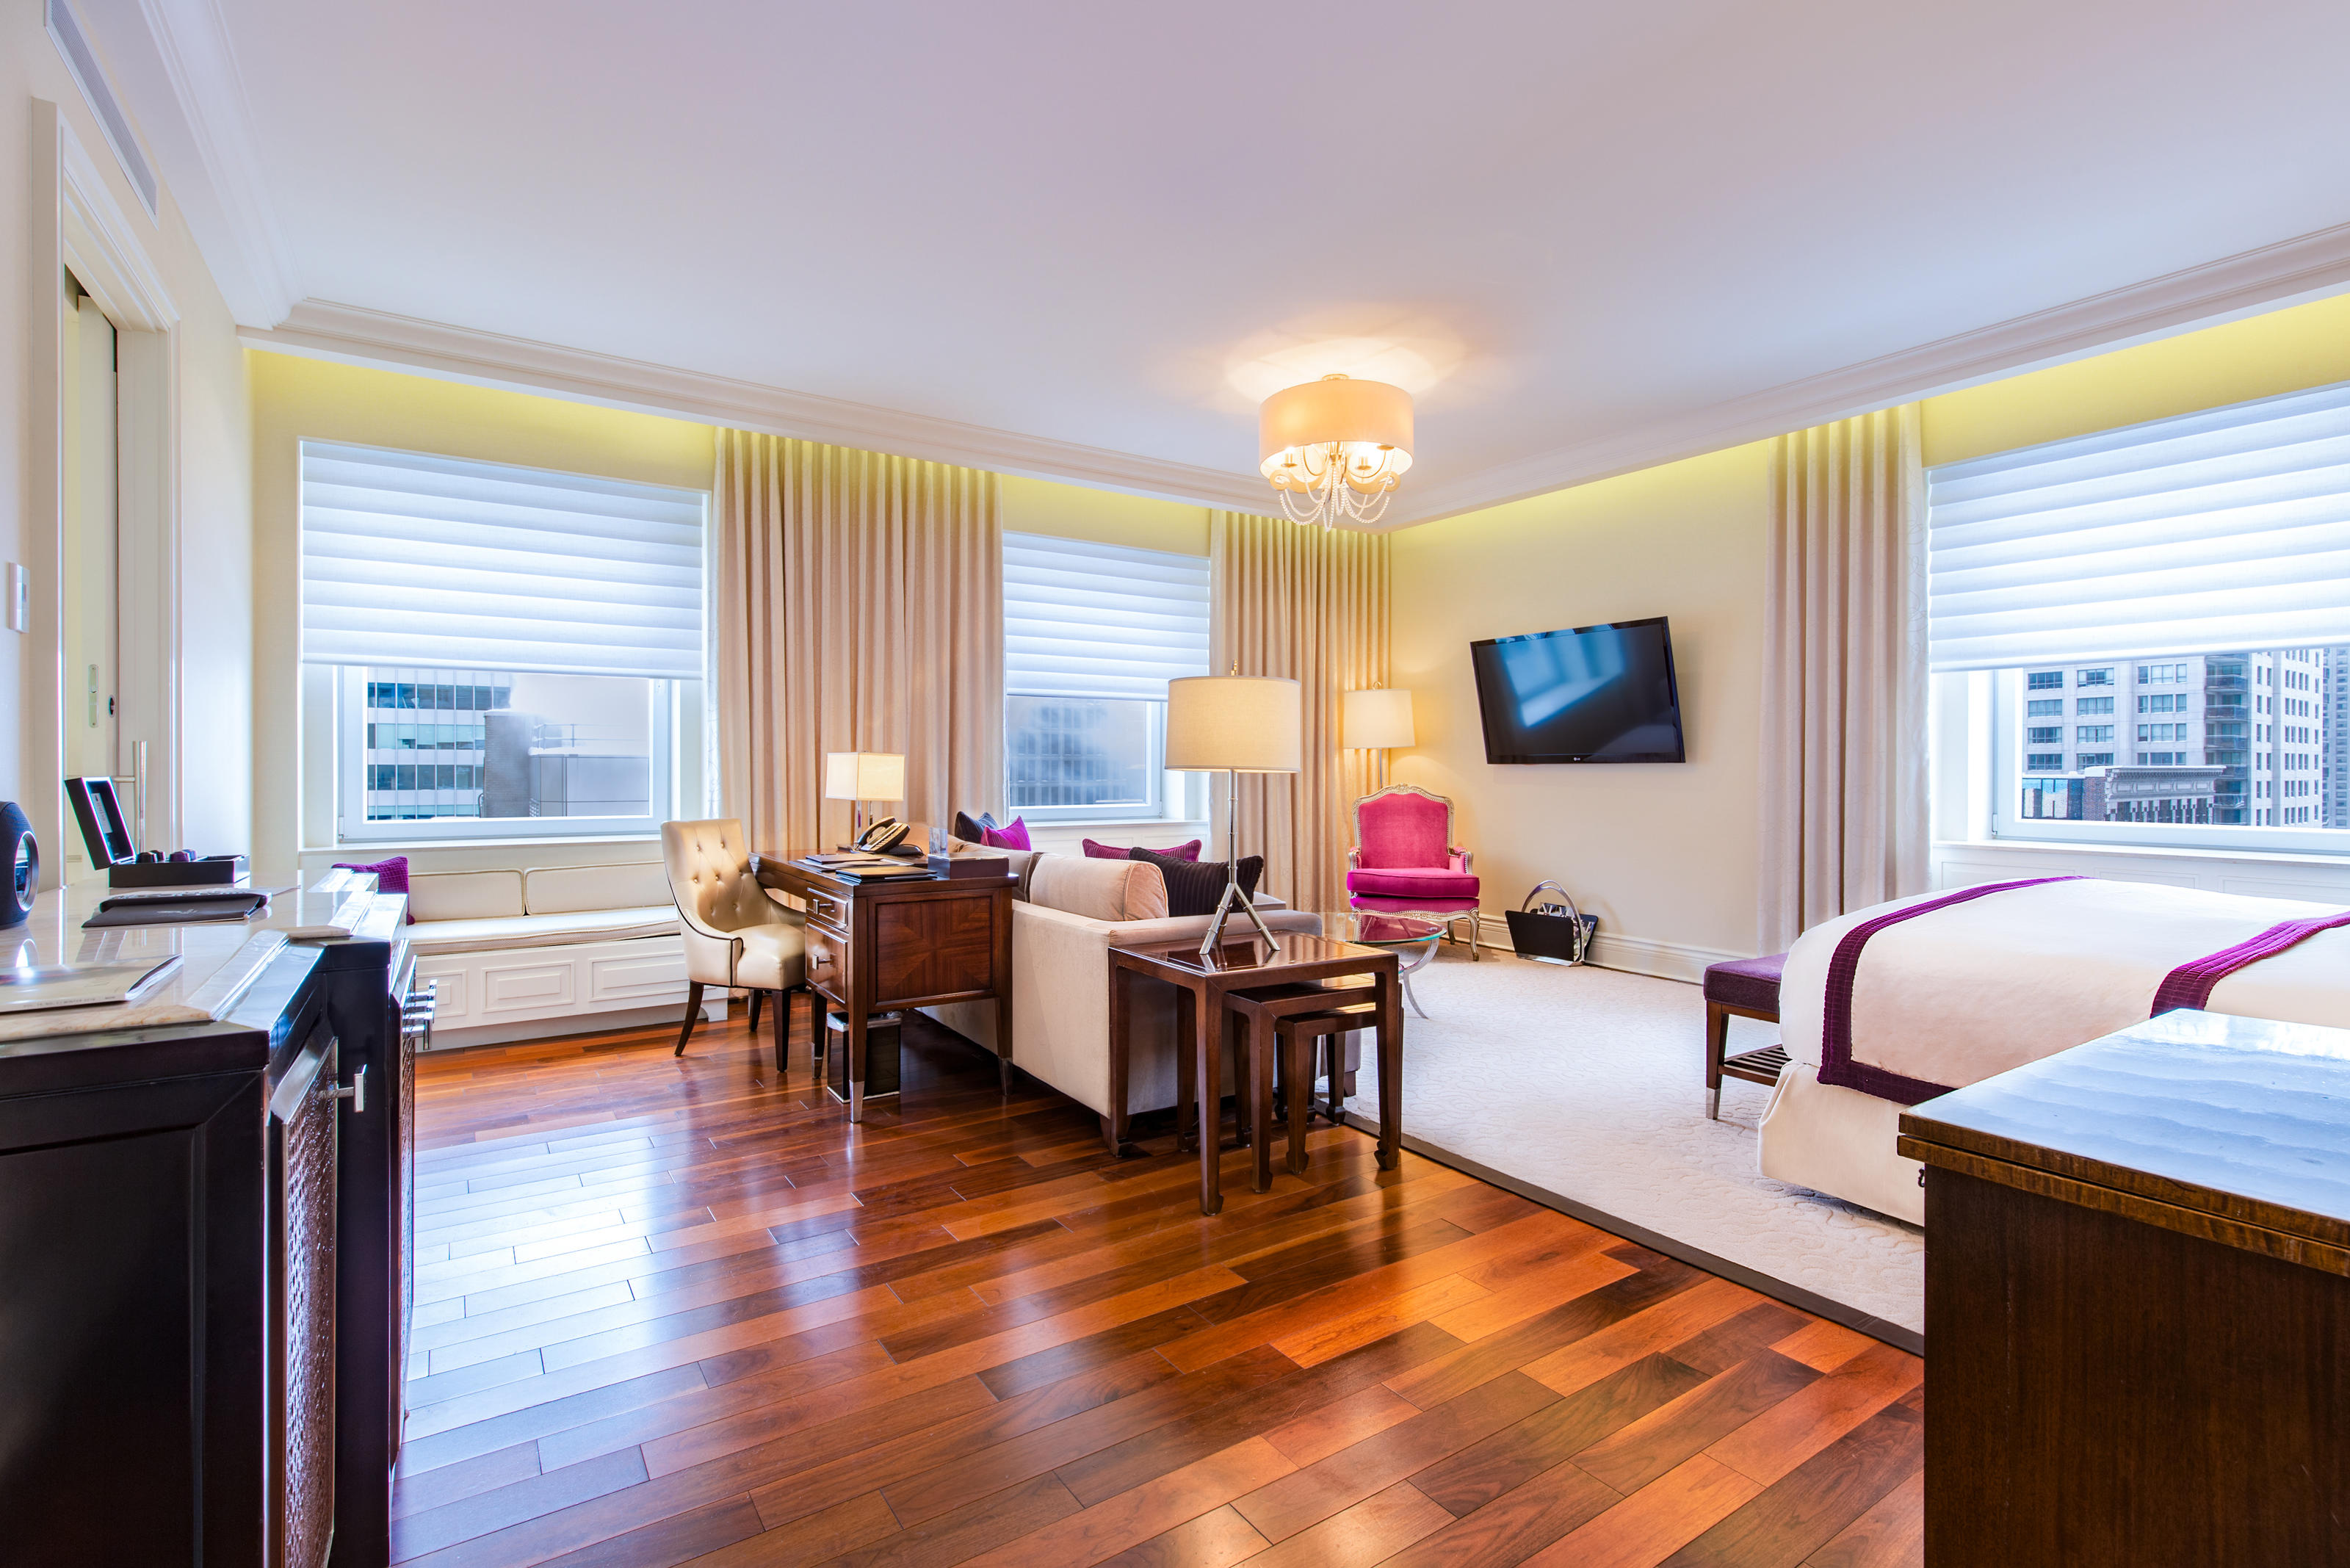 The Ritz-Carlton, Montreal à Montreal: Revel in the ample square footage of our Junior Suite King, featuring a comfortable sitting area and walk-in closet. Stay revitalized and focused with features such as an in-room Nespresso machine and a sleek executive workspace. A TOTO toilet with a heated seat, an oversized soaking tub and an expanded collection of Asprey bath products are provided in the marble bathroom.